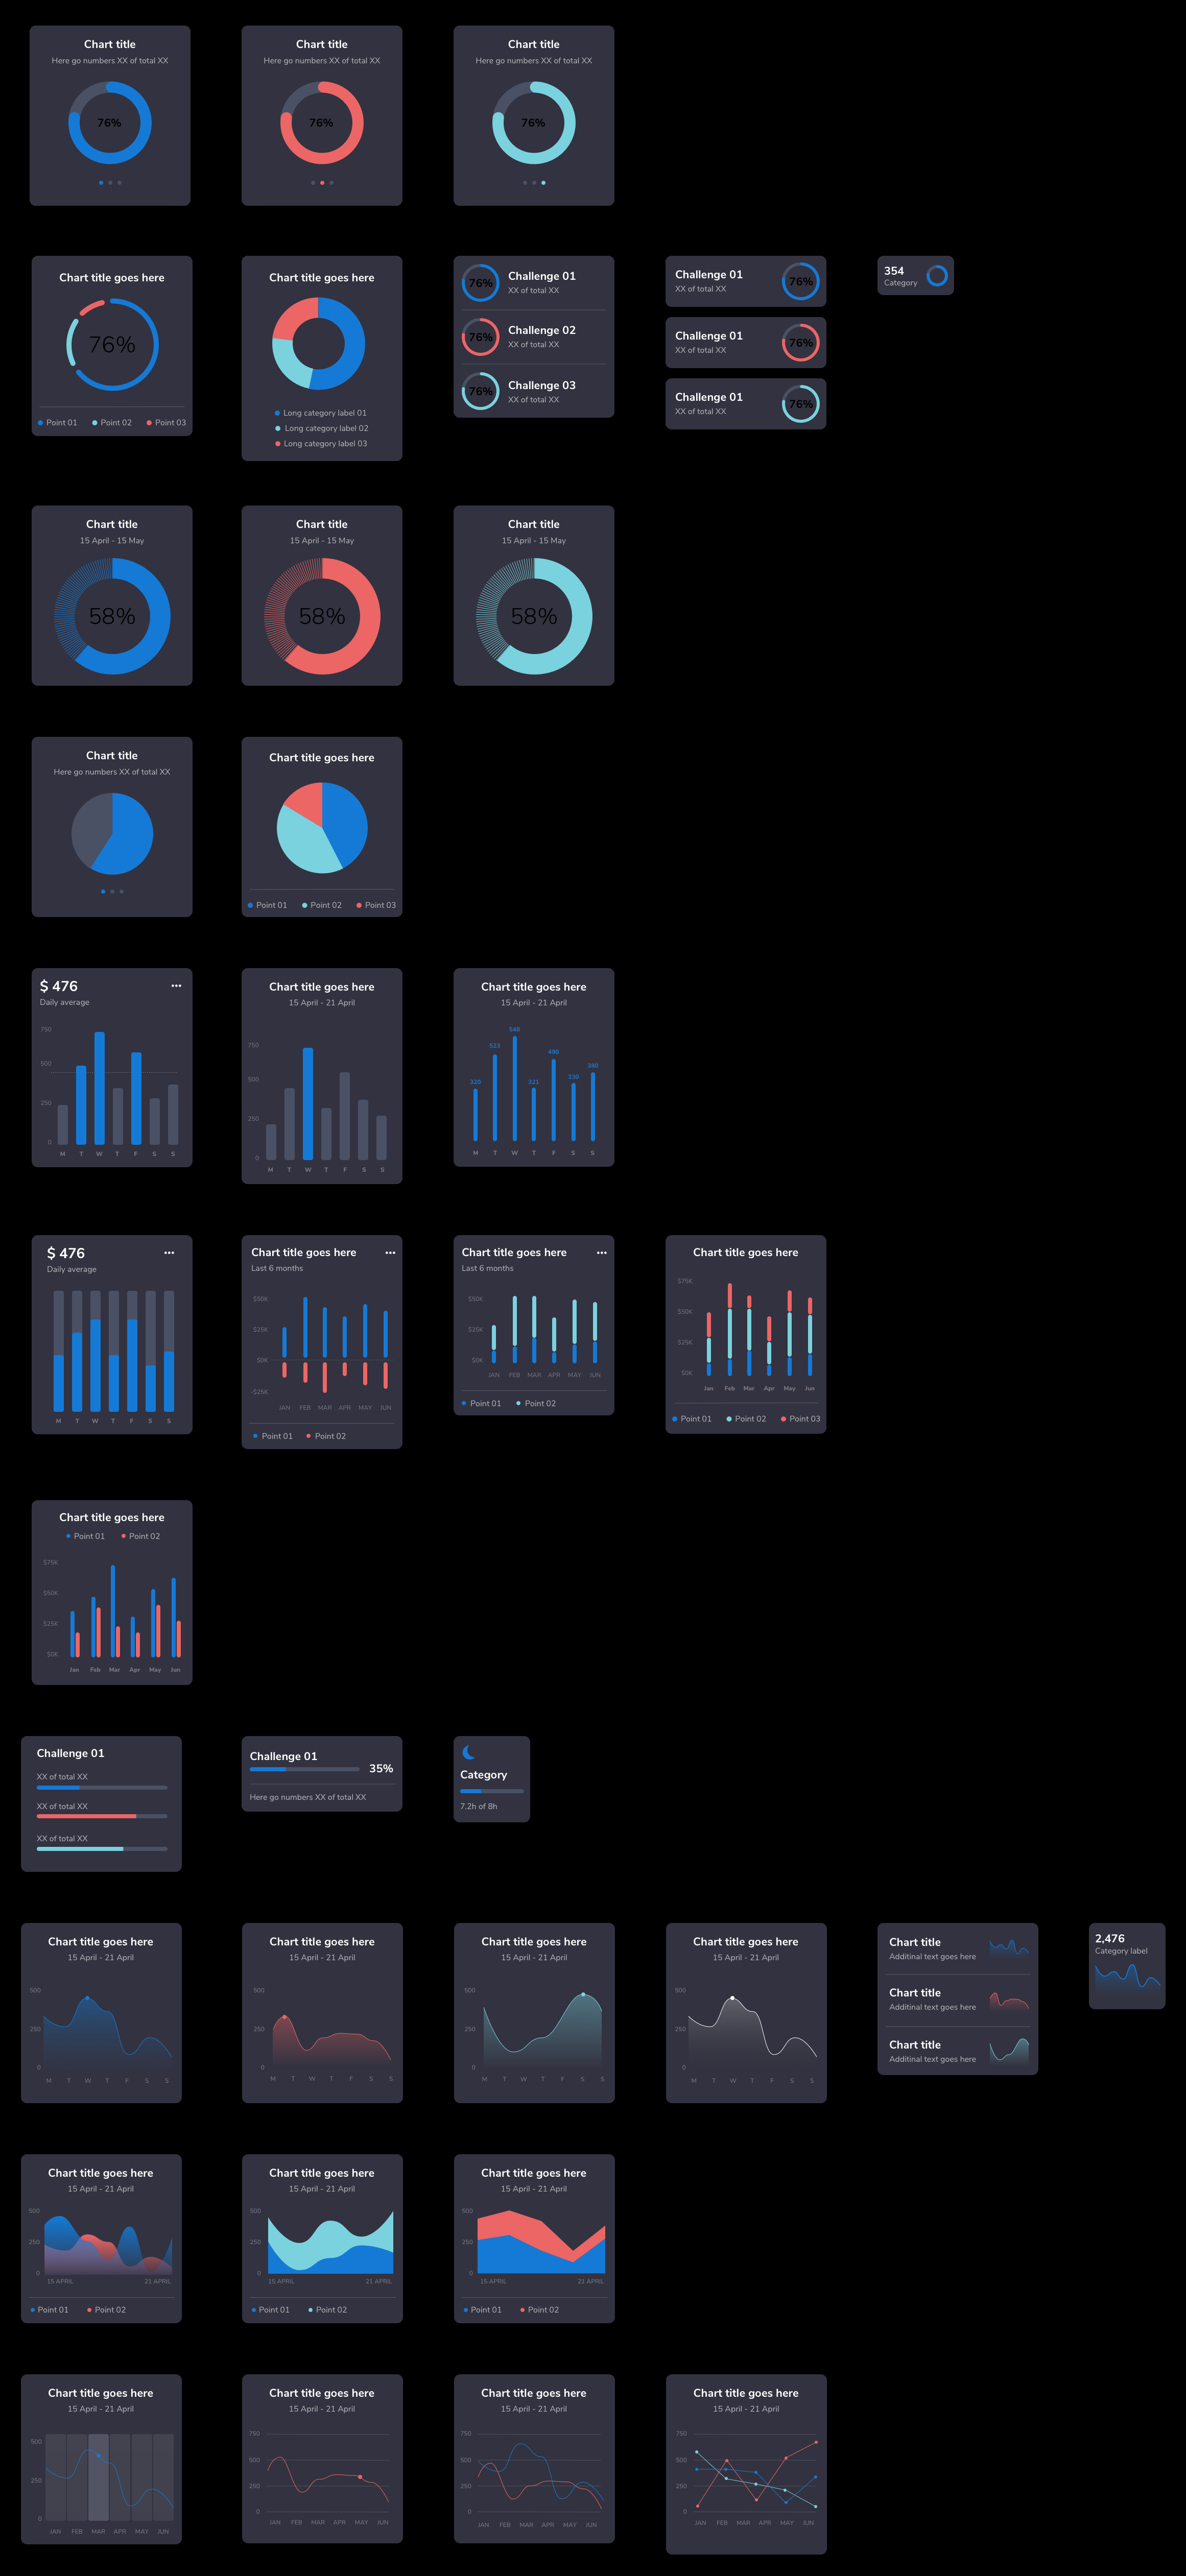 Charts Free UI Kit - 60+ modern charts, carefully crafted and designed in light and dark mode. Perfect tool to help you create beautiful dashboards. It is well-organized and has an easy setup. Compatible with Sketch, Figma and Adobe XD.